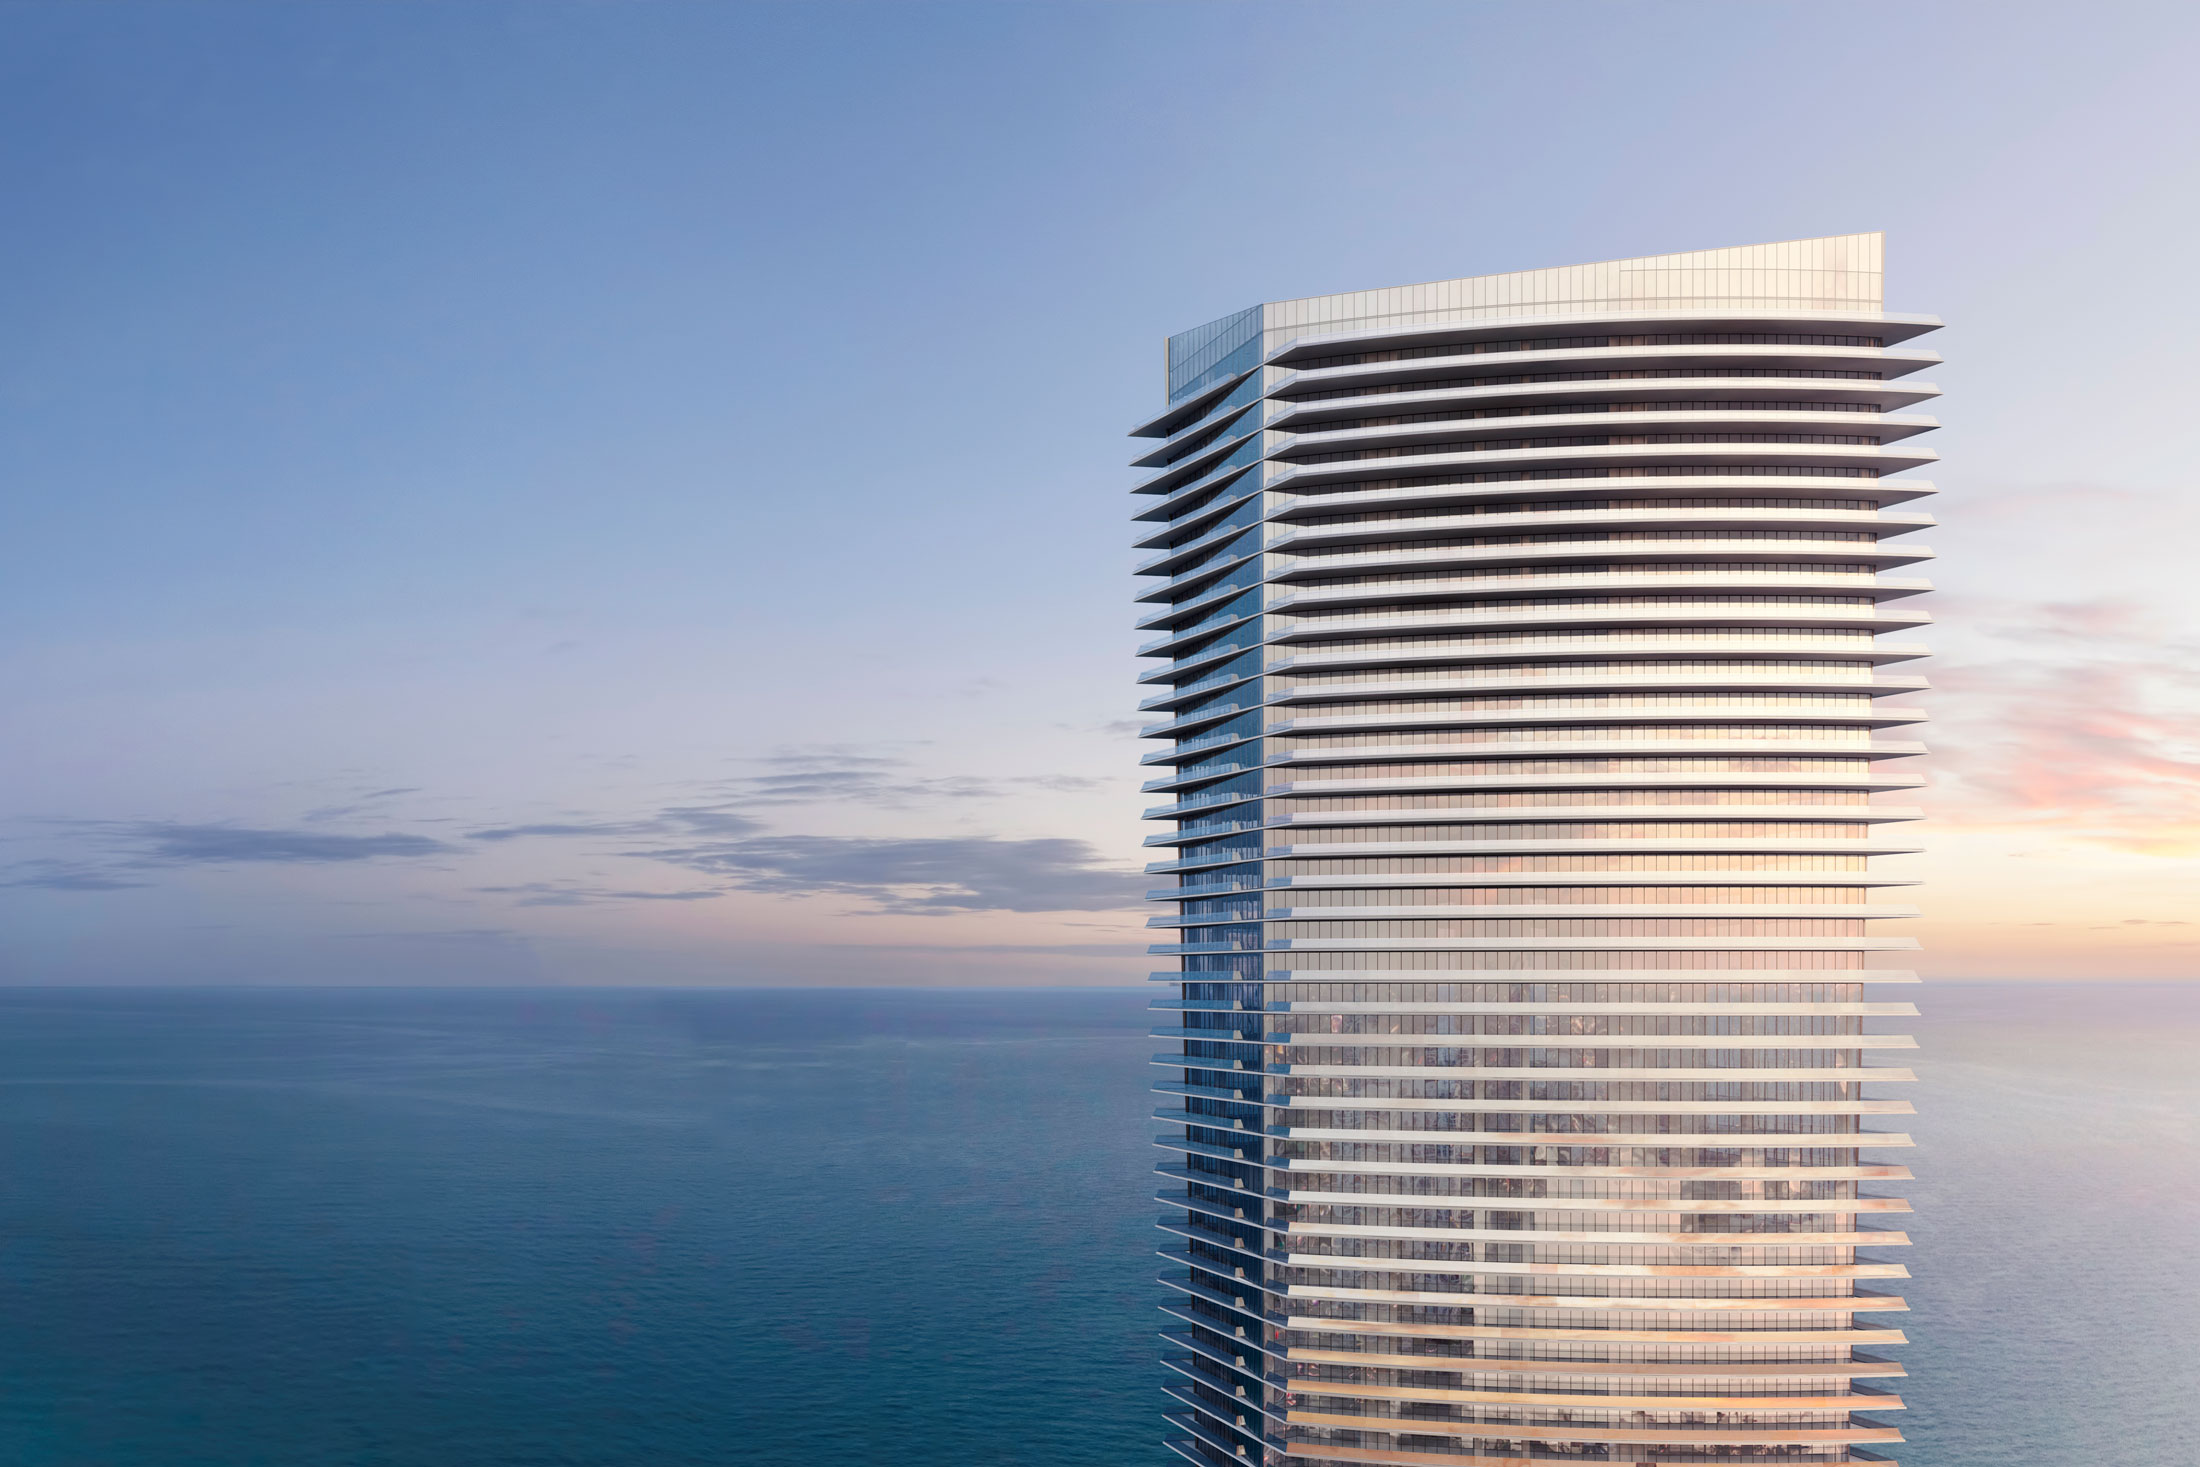 A rendering of Pelli's upcoming 60-story Residences by Armani/Casa building in Miami. (Photo: Courtesy The Related Group and Dezer Development)